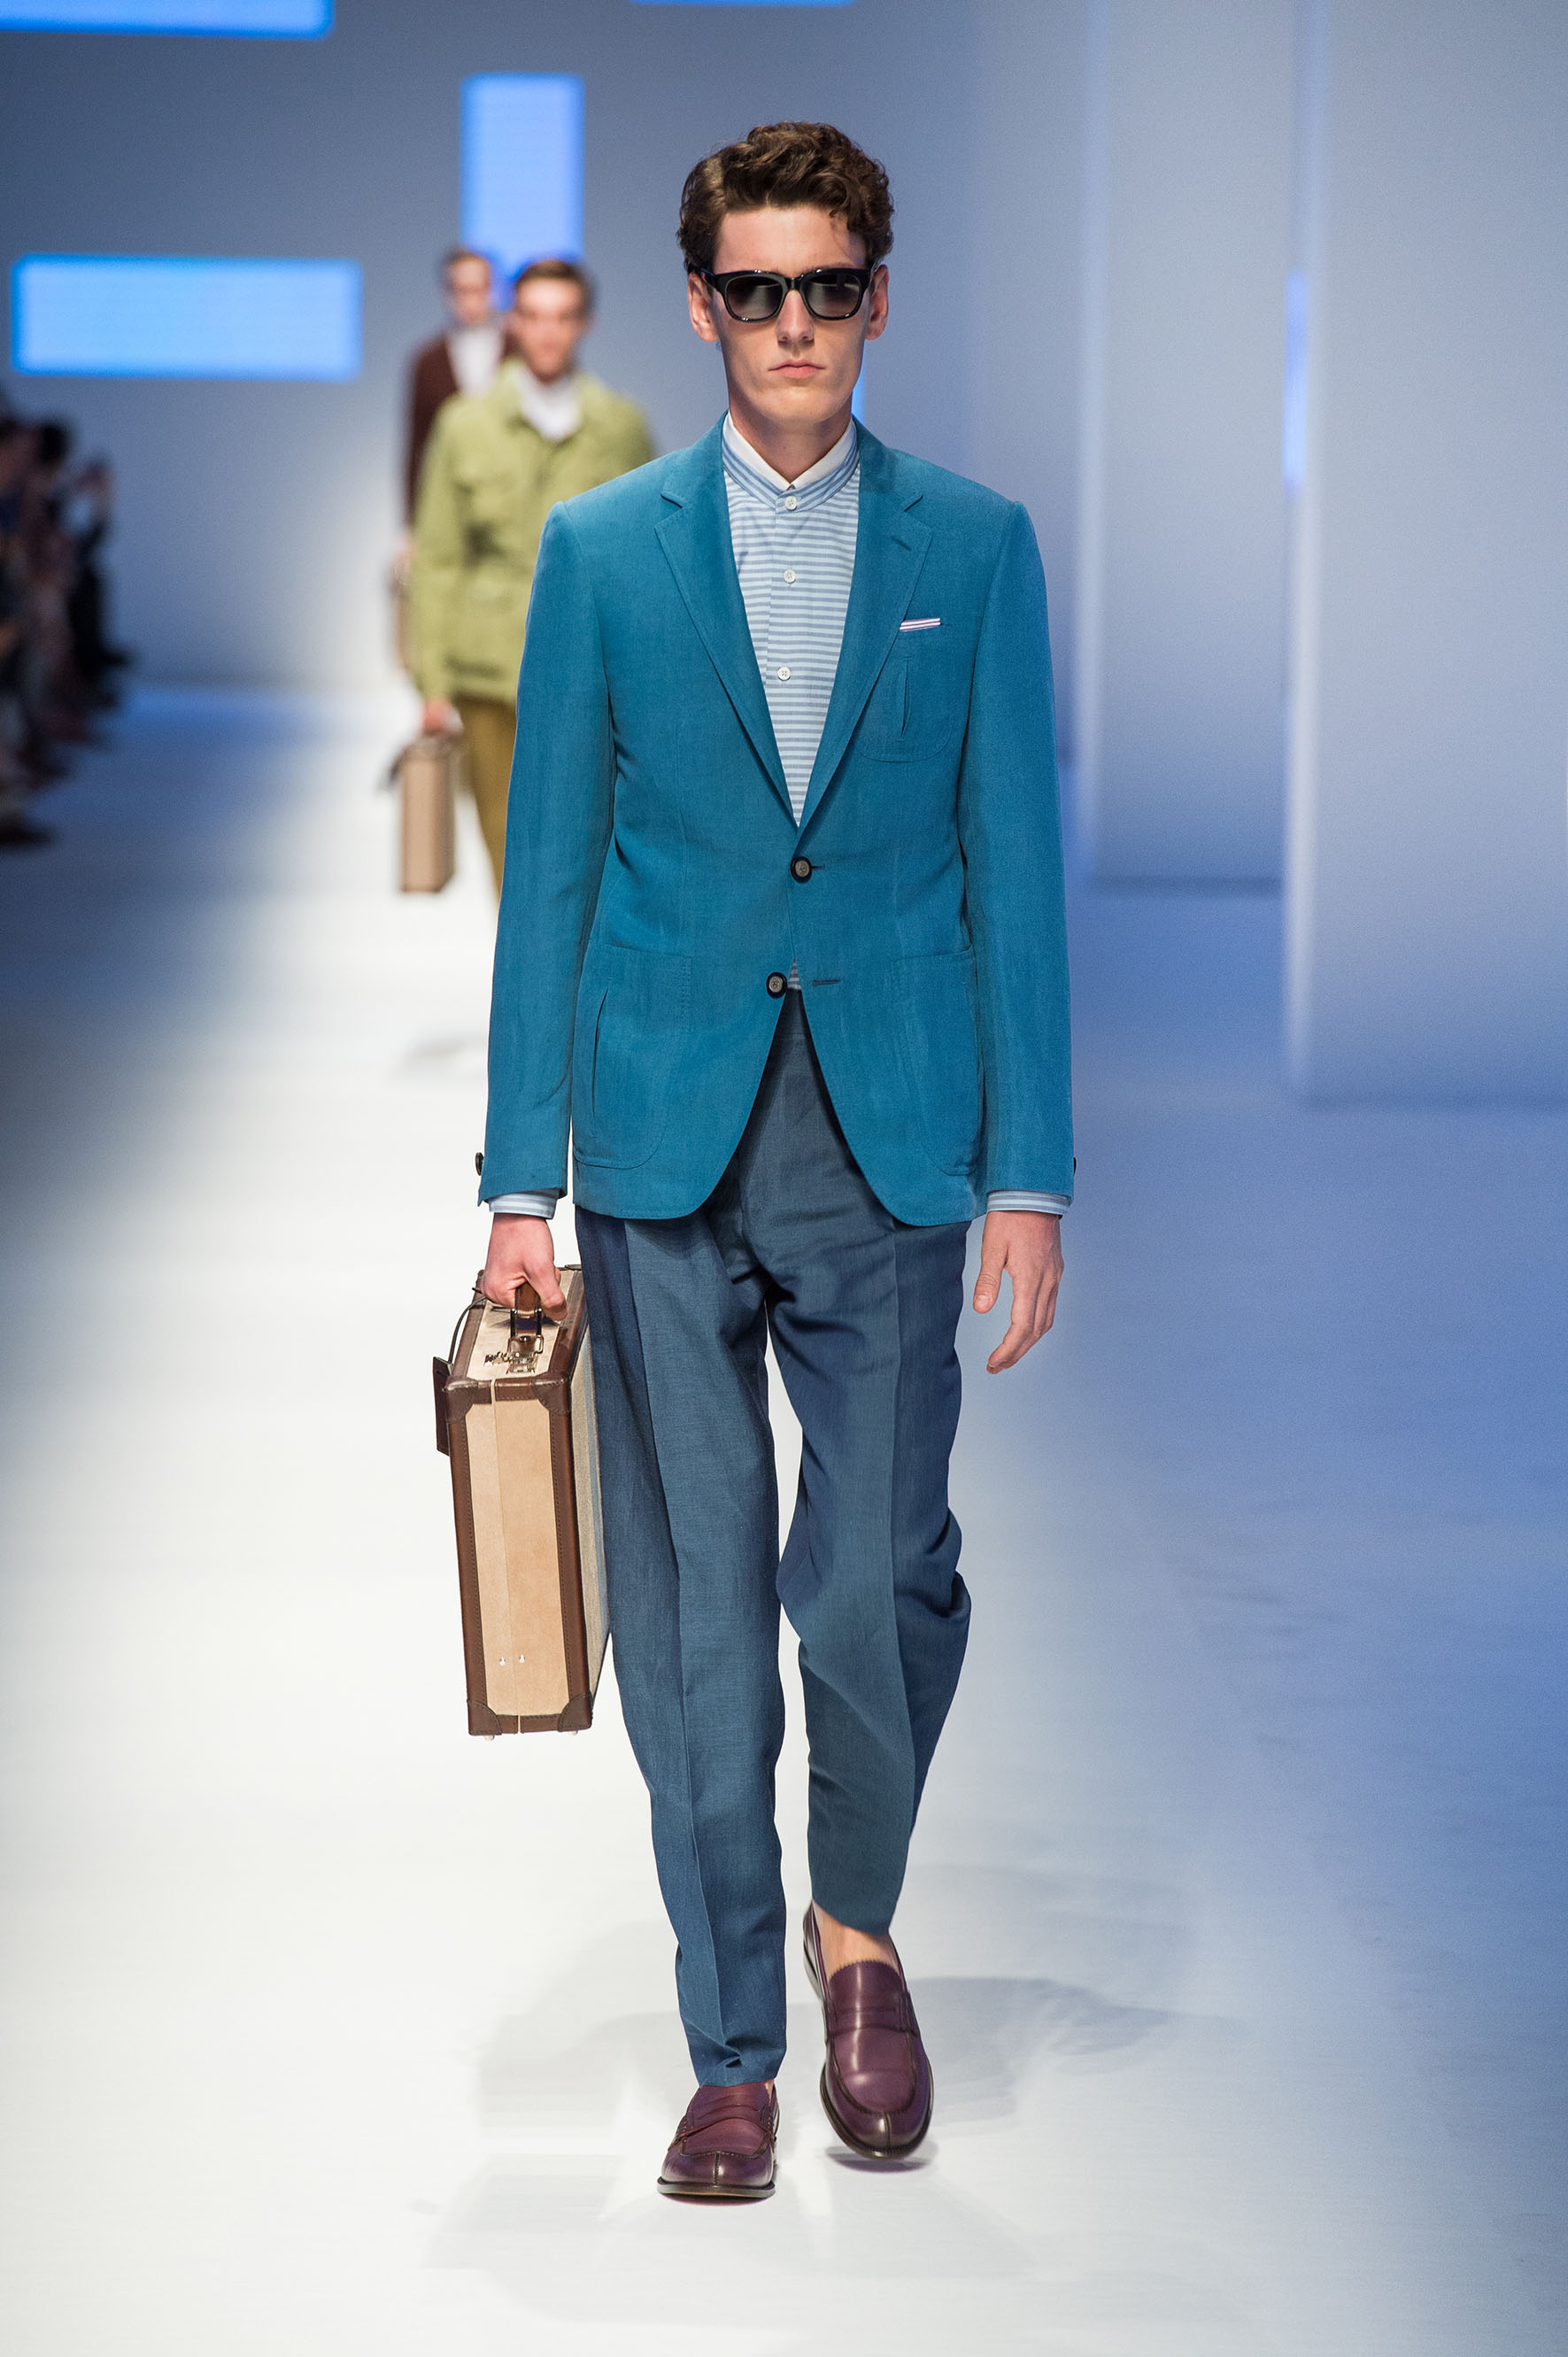 Linen-silk two button jacket with bellows pockets, reverse-pleated pants, calfskin loafers, briefcase with stripe